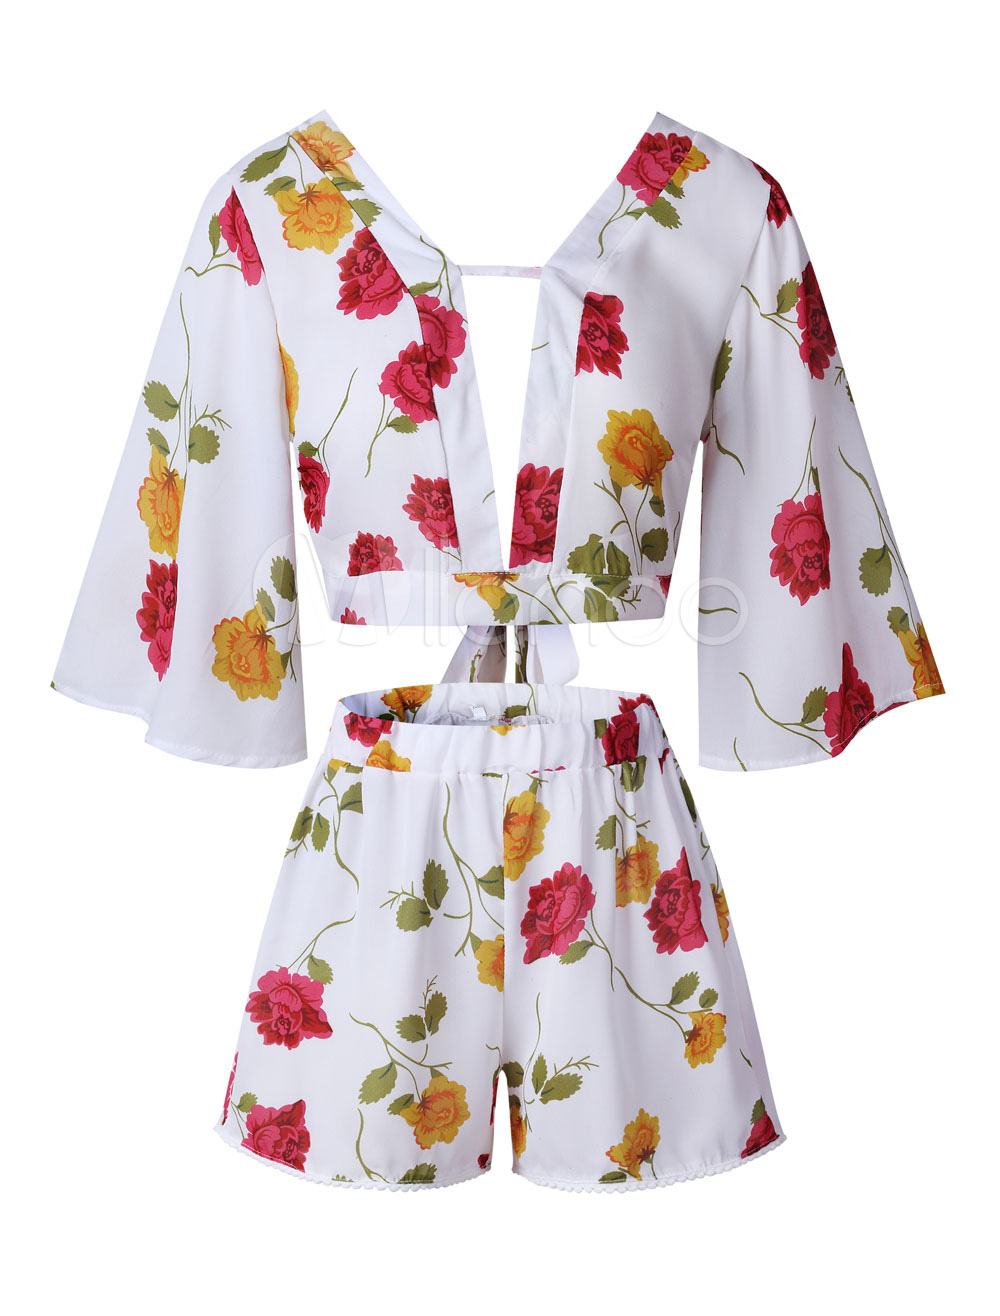 Buy Women Two Piece Set Floral Print V Neck Summer Top With Shorts for $18.69 in Milanoo store